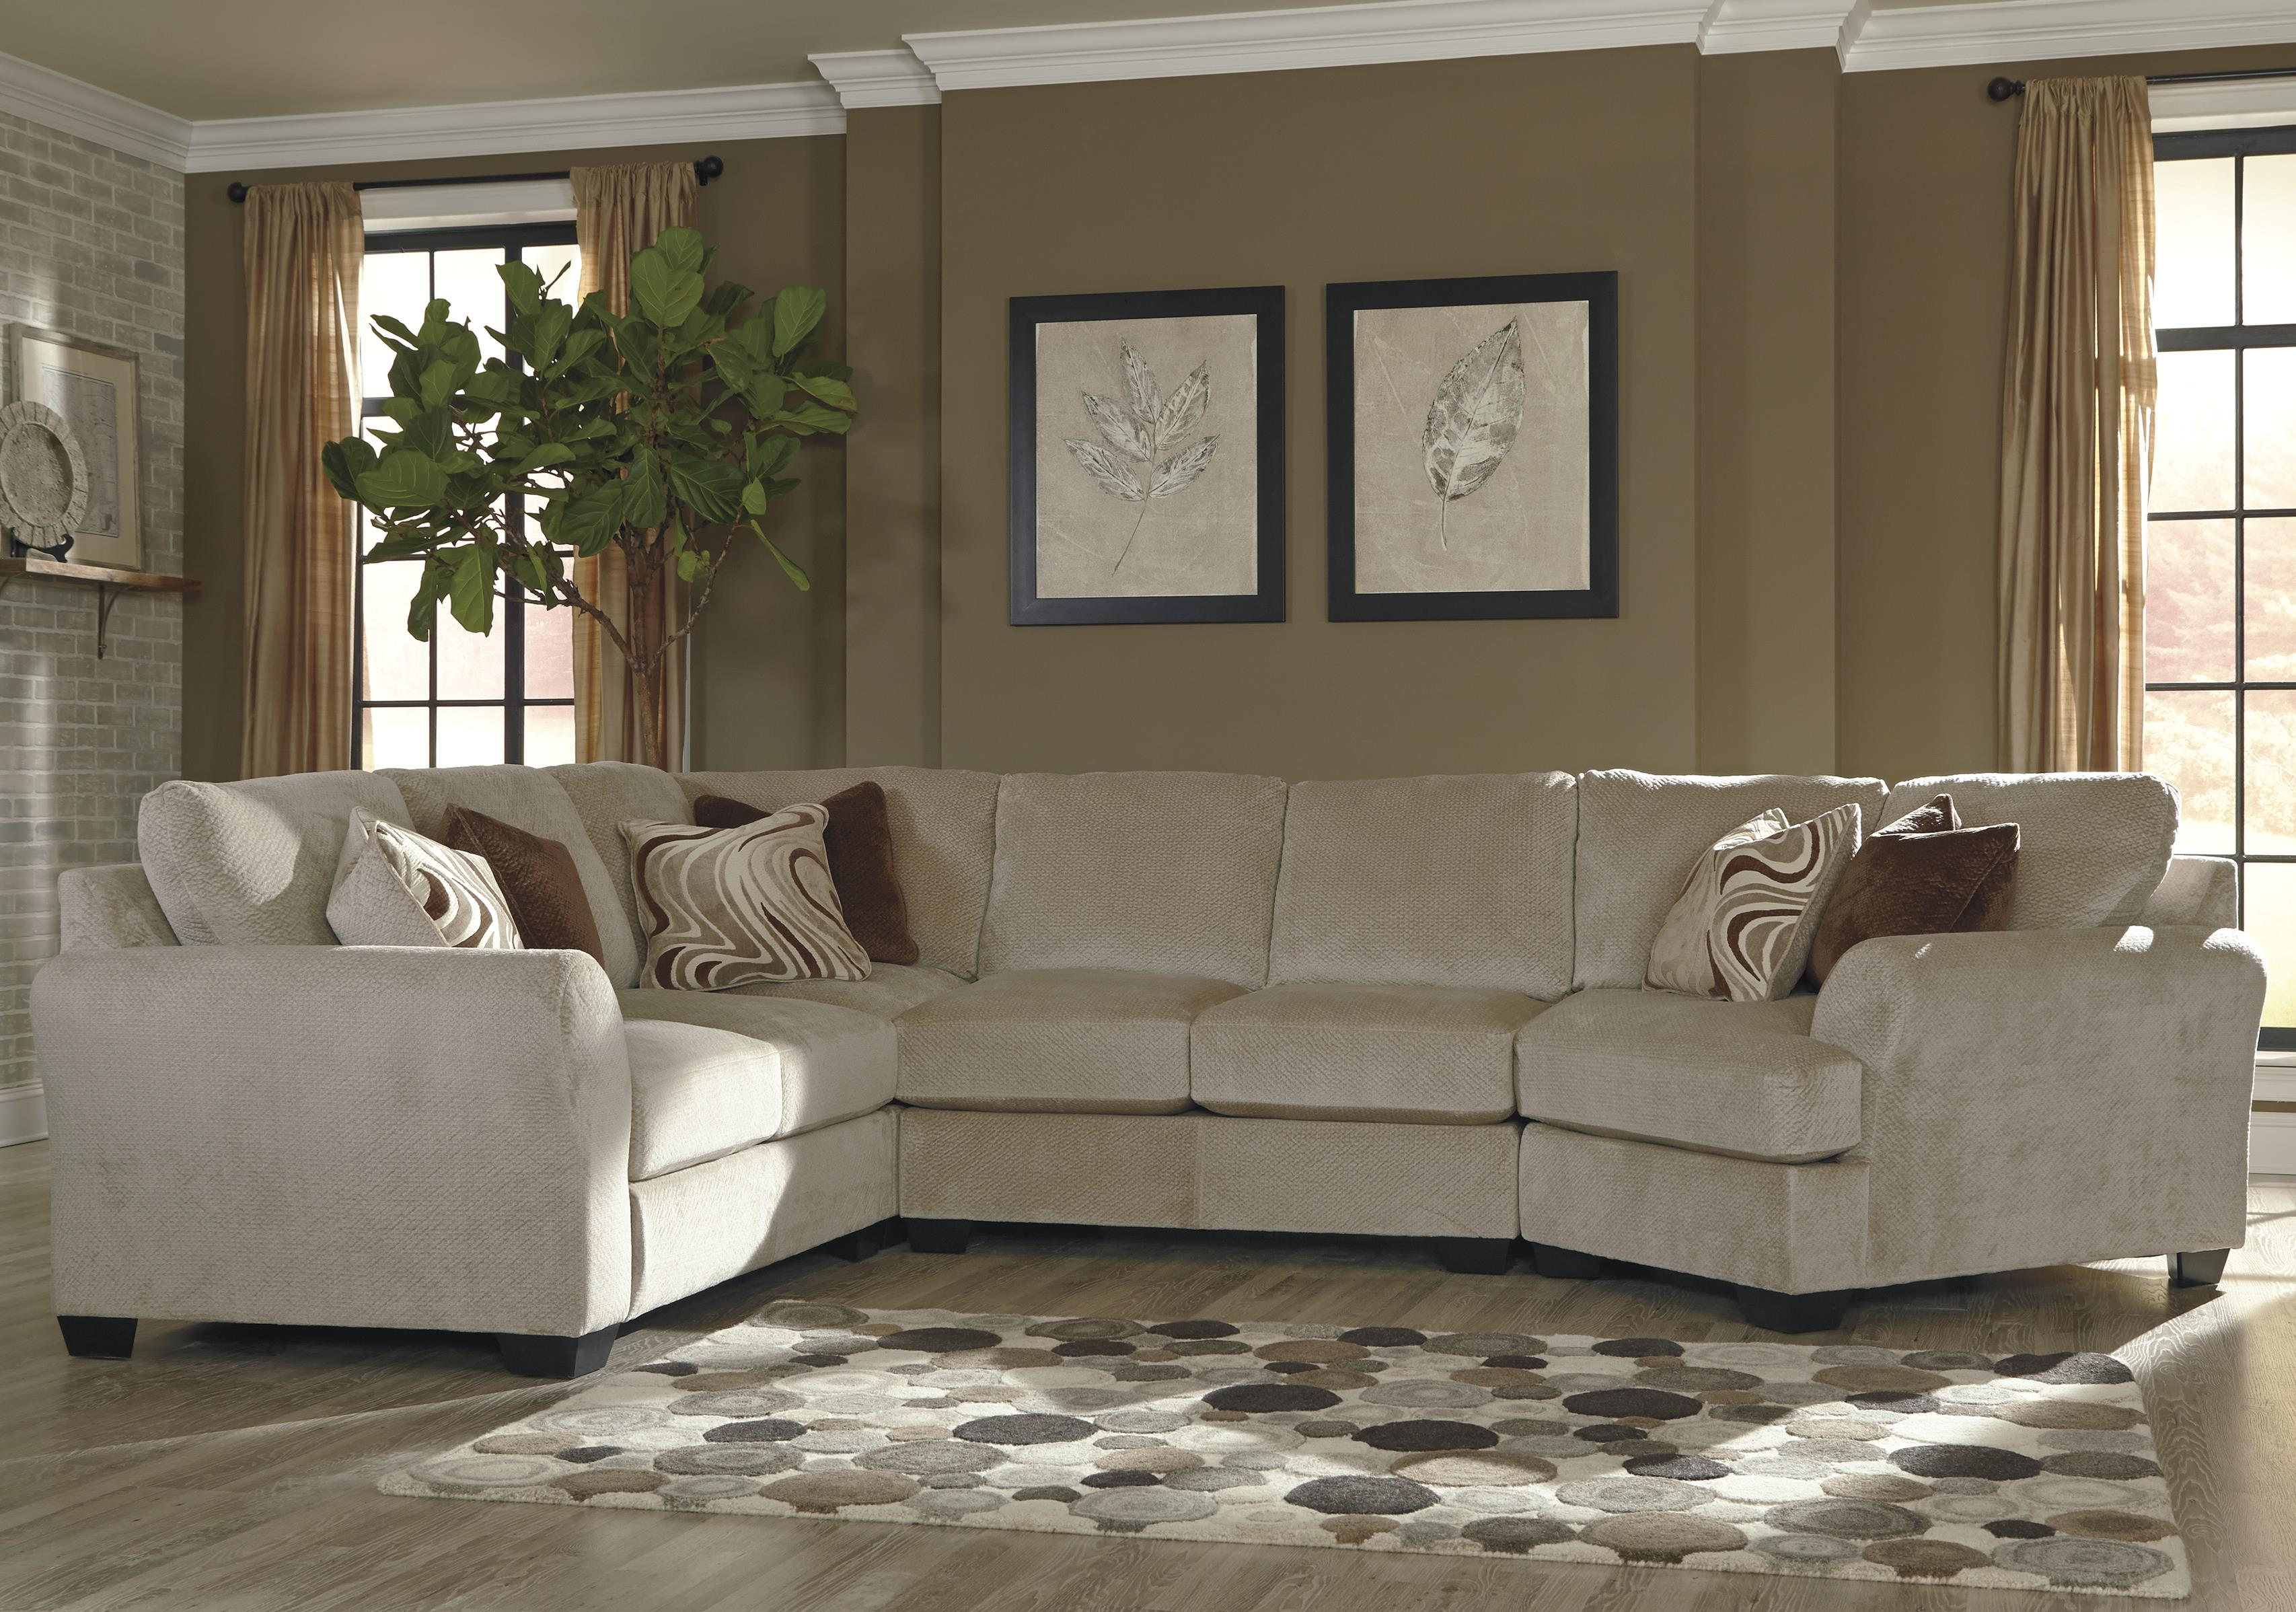 Benchcraft Hazes 4-Piece Sectional w/ Cuddler - Item Number: 6570155+77+34+75